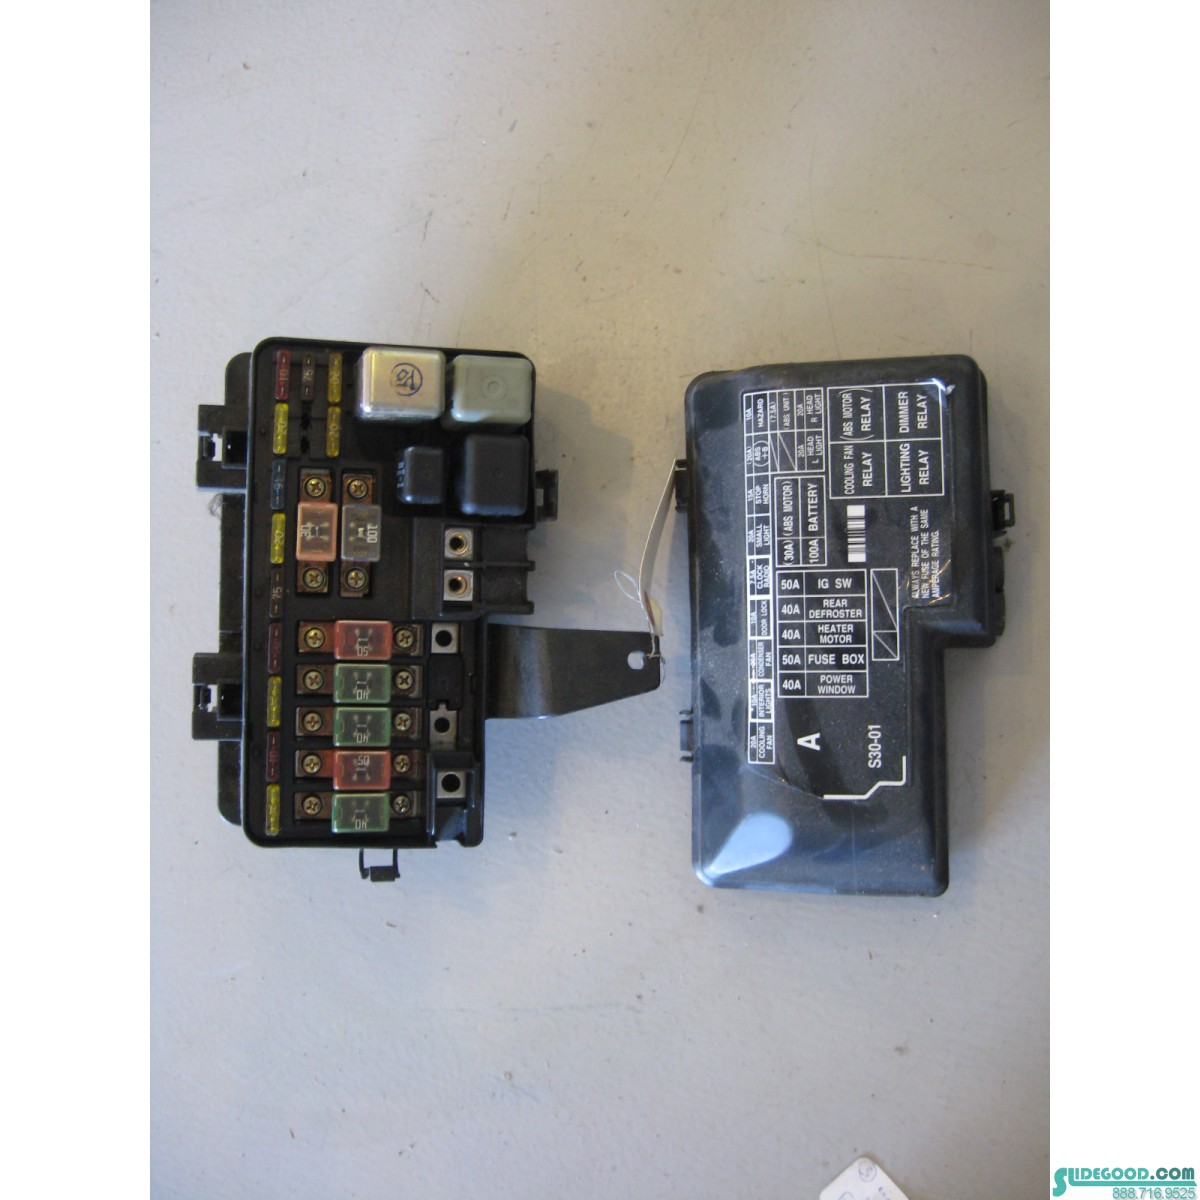 Bay Fuse Box Wiring Diagram Peugeot 206 Heater 01 Honda Prelude Engine S30 A0 R5970bay 19